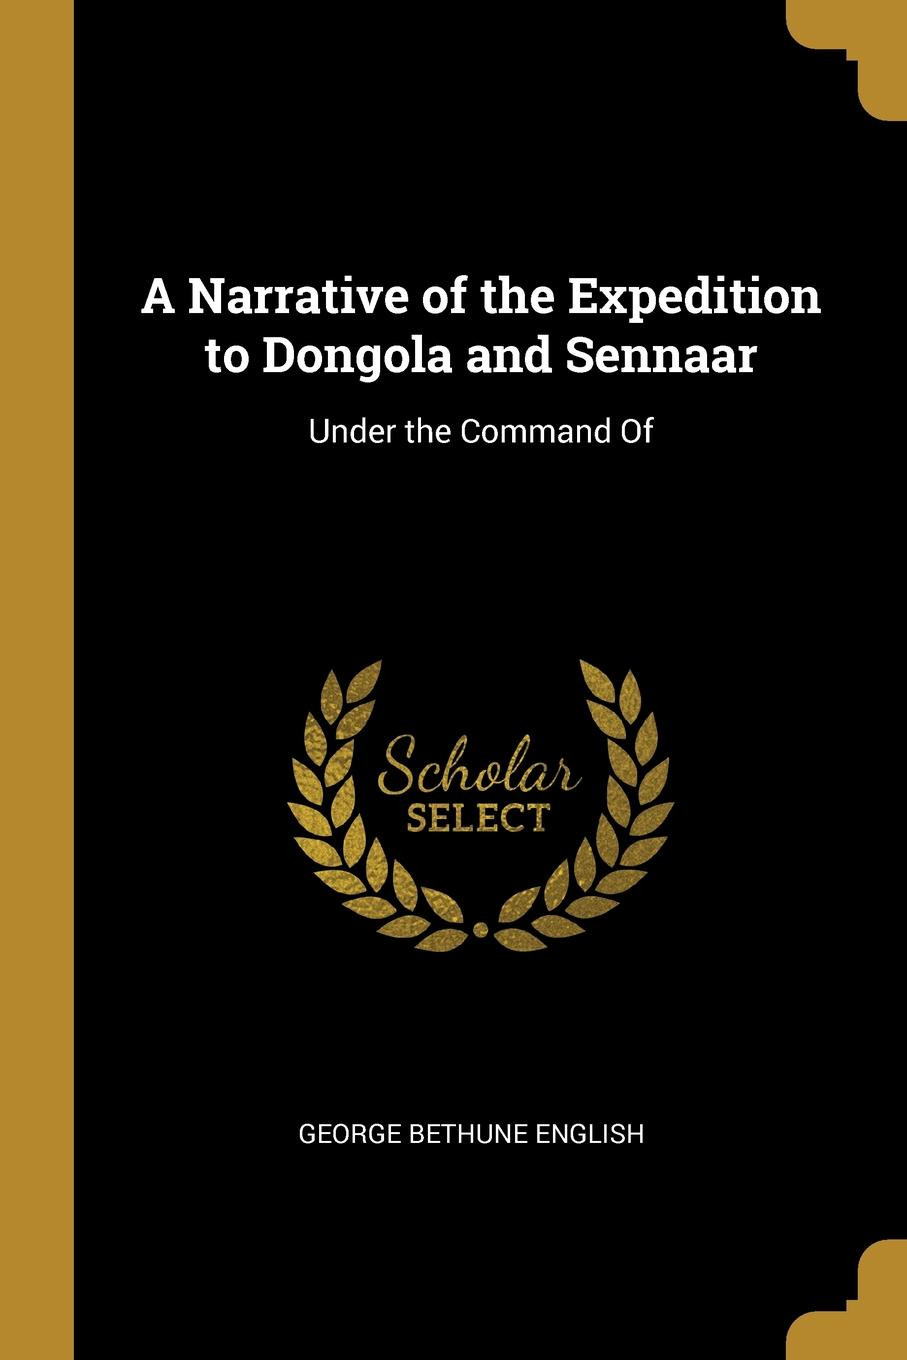 George Bethune English. A Narrative of the Expedition to Dongola and Sennaar. Under the Command Of